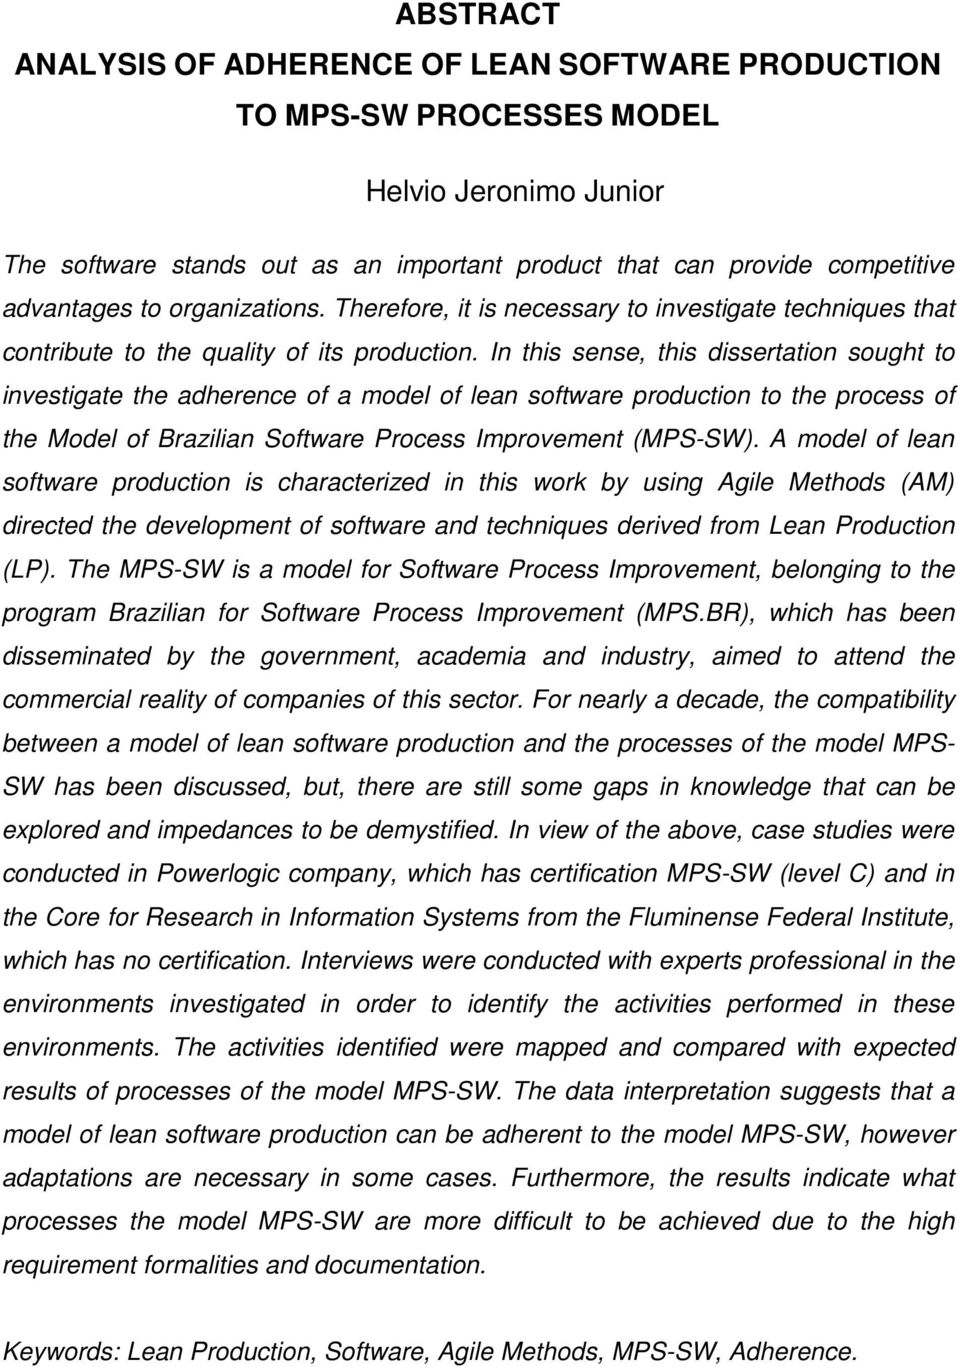 In this sense, this dissertation sought to investigate the adherence of a model of lean software production to the process of the Model of Brazilian Software Process Improvement (MPS-SW).